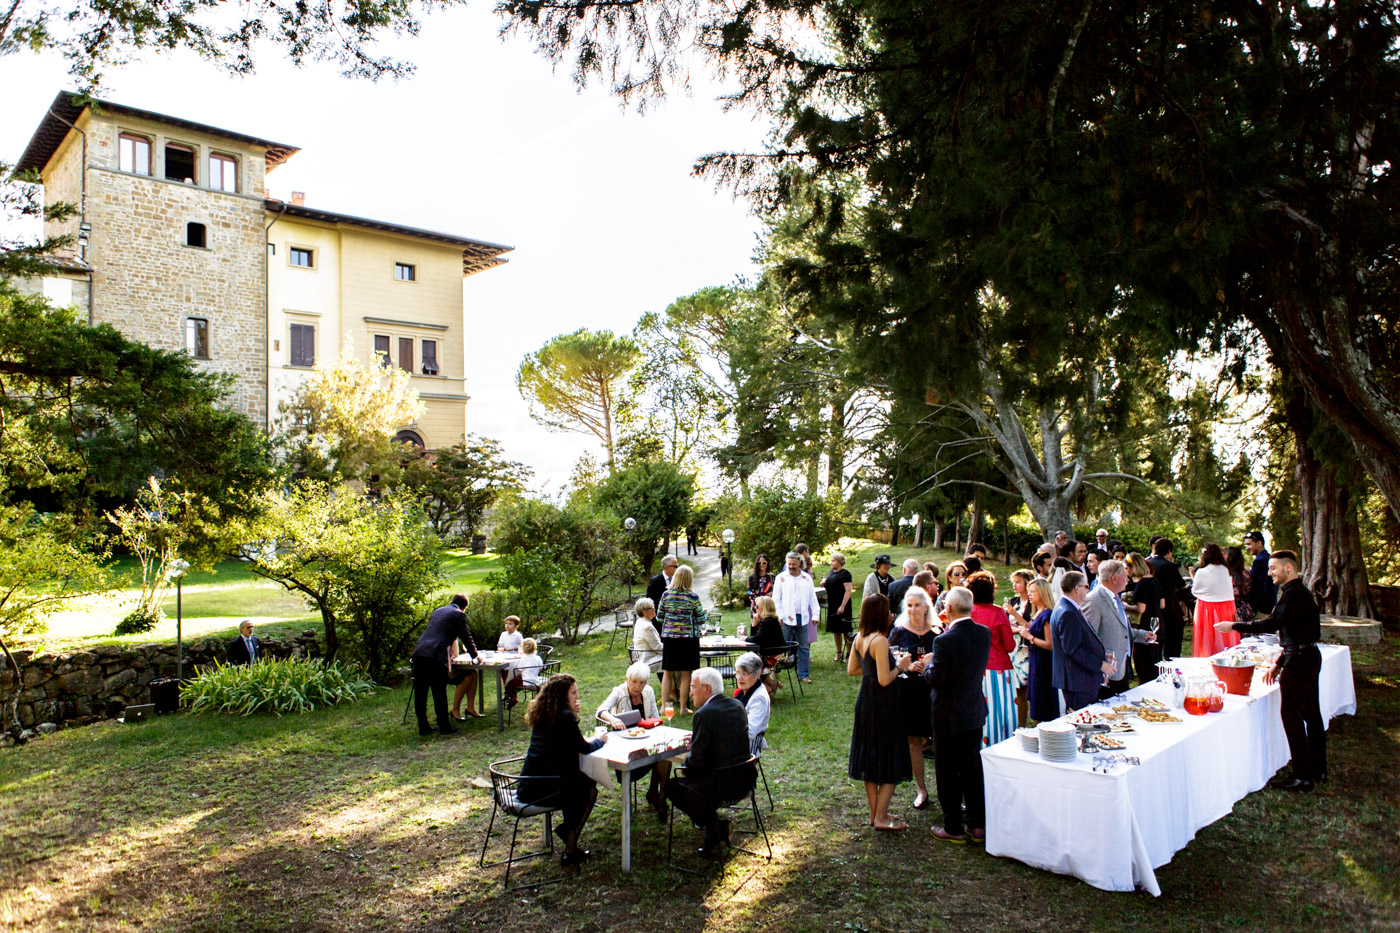 wedding guests entertain themselves with an aperitif in the garden of the ancient villa in Tuscany